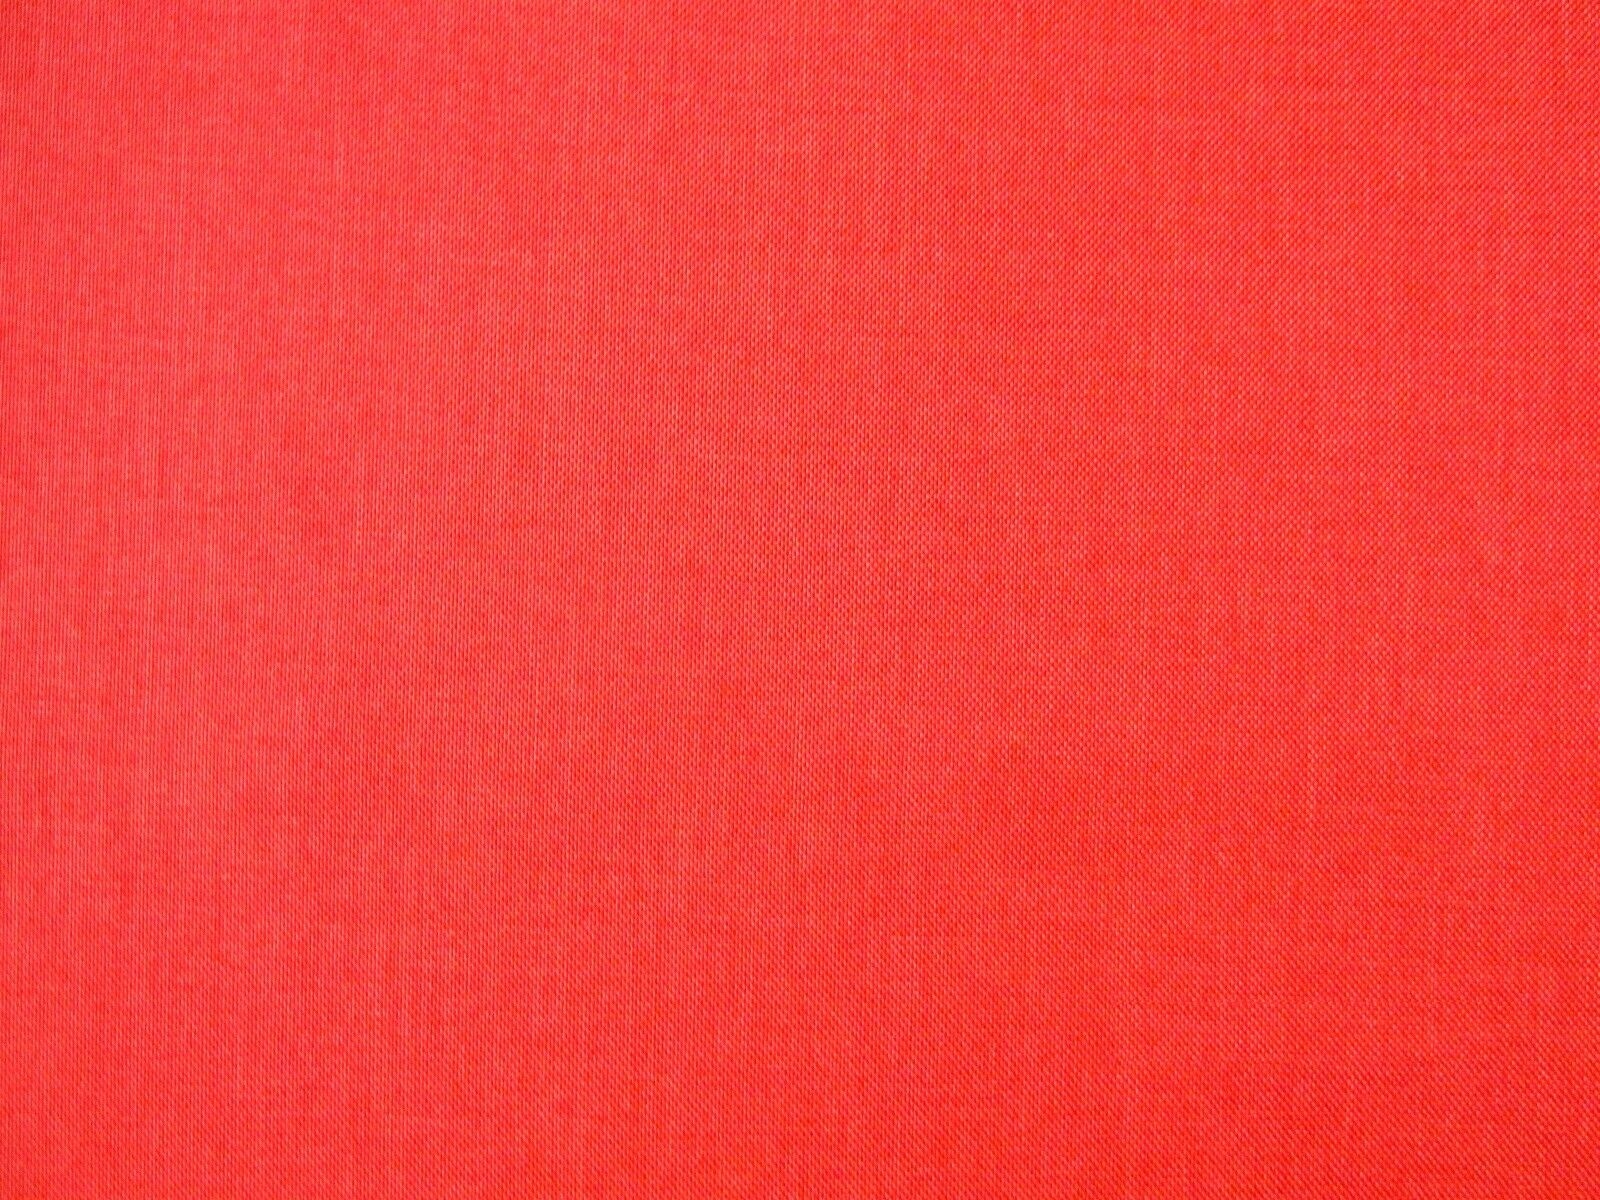 Just £6.95! Red Orange Linen look Curtain Upholstery Fabric Material SALE